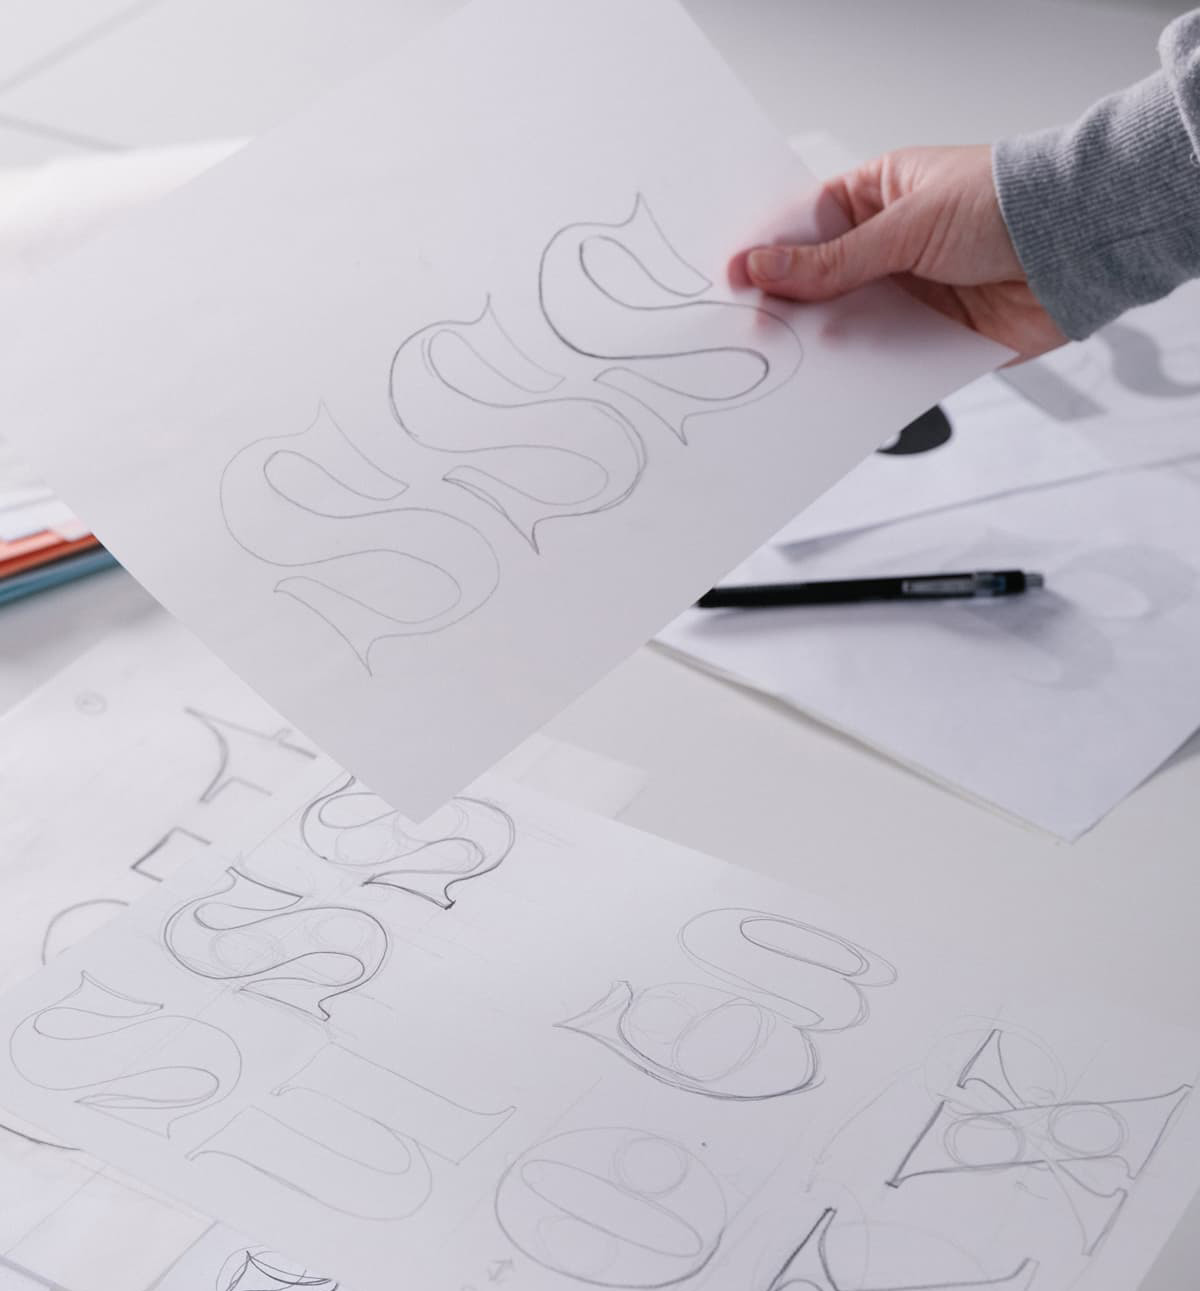 Choosing the best custom font from potential ideas on sketch